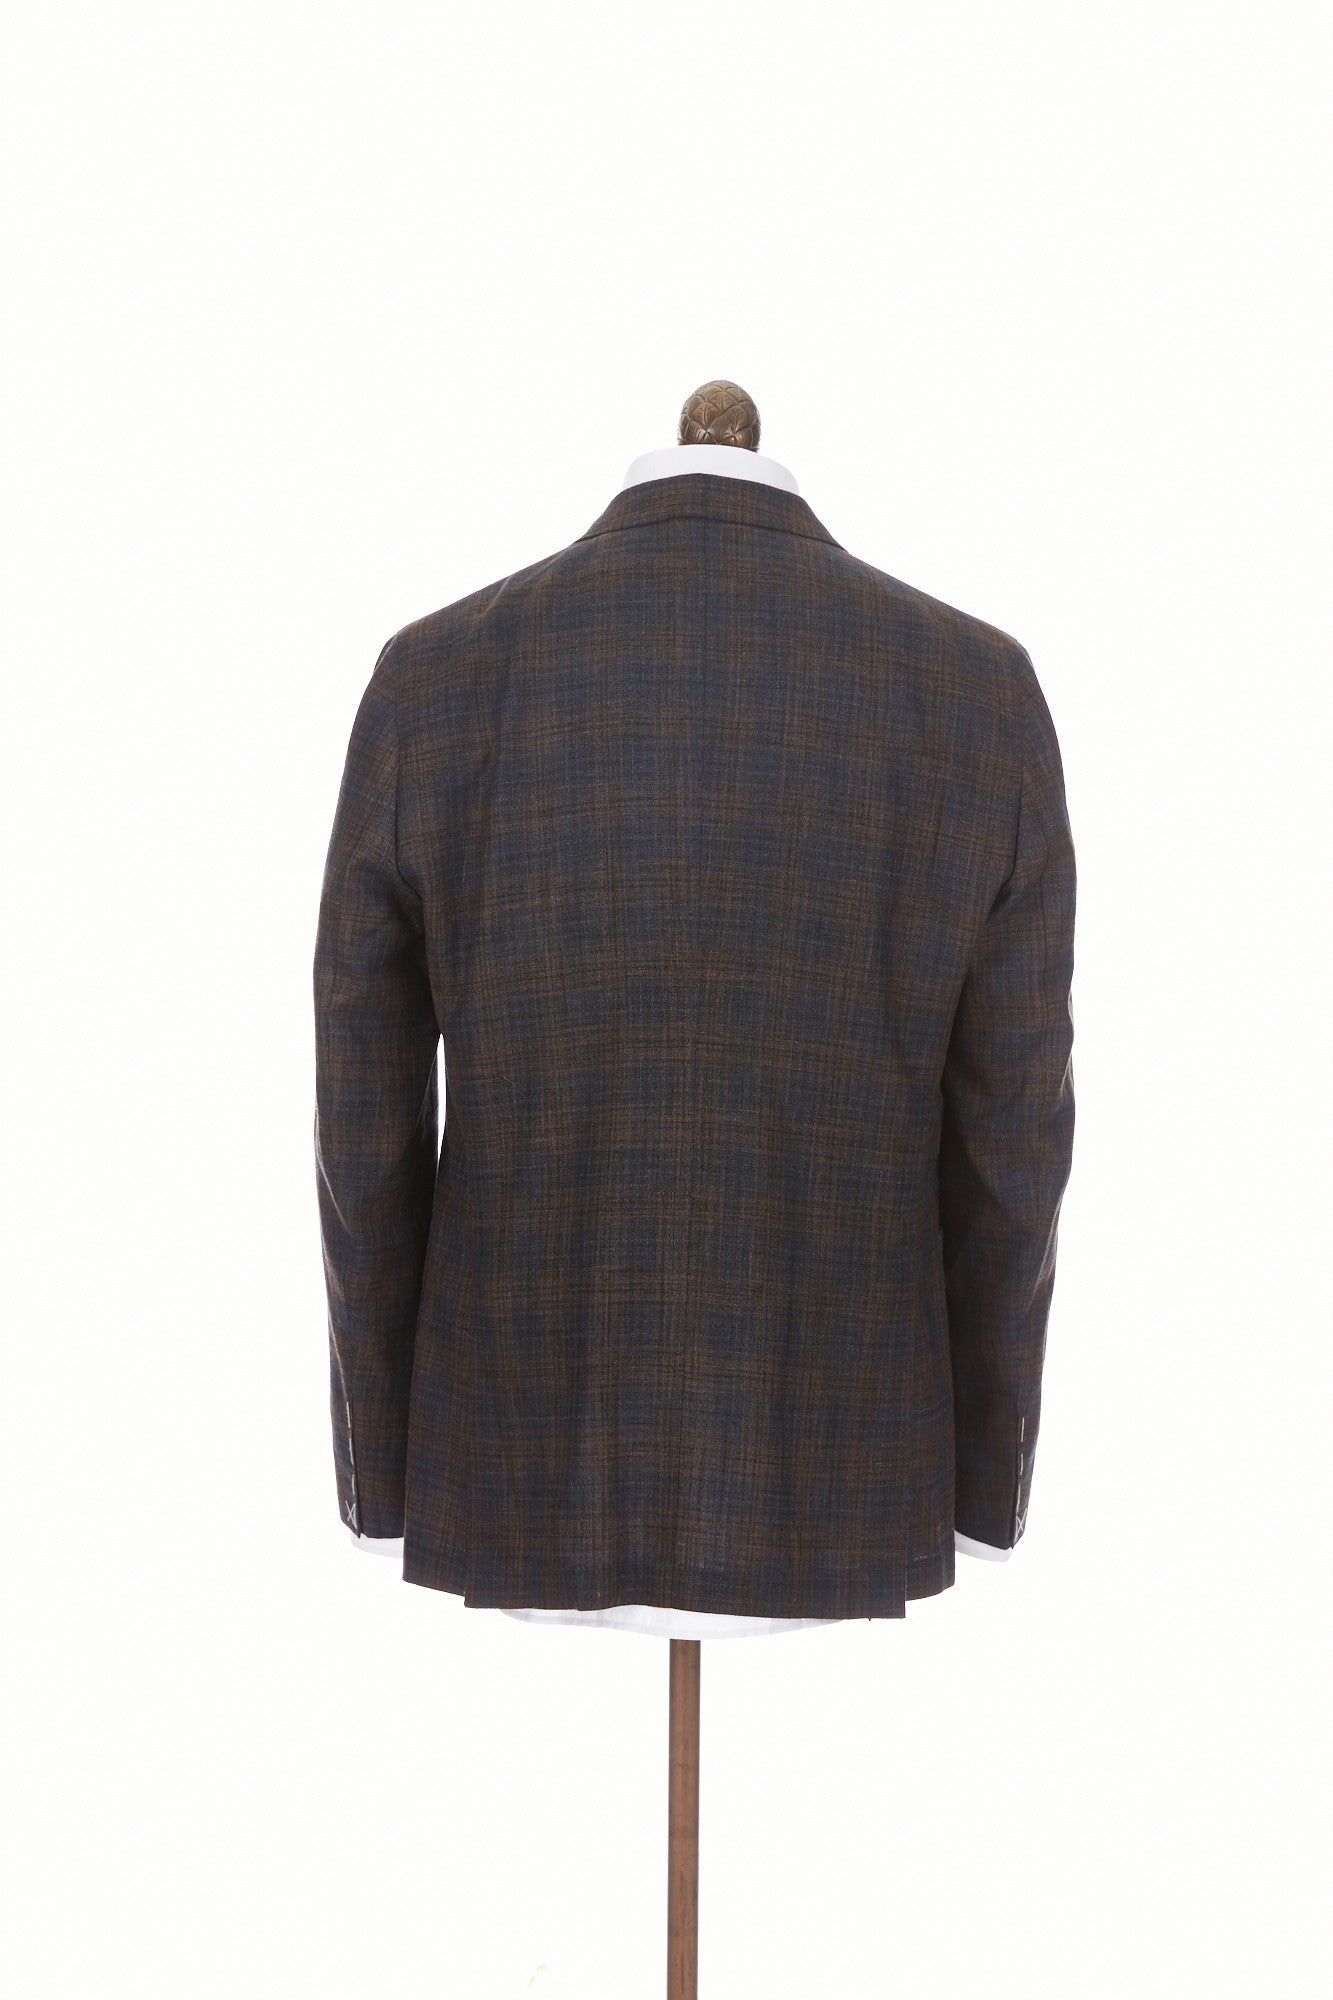 Boglioli 'K-Jacket' Brown & Navy Check Sport Jacket - Blazer, Sport Coat -Model: N2902E. Back